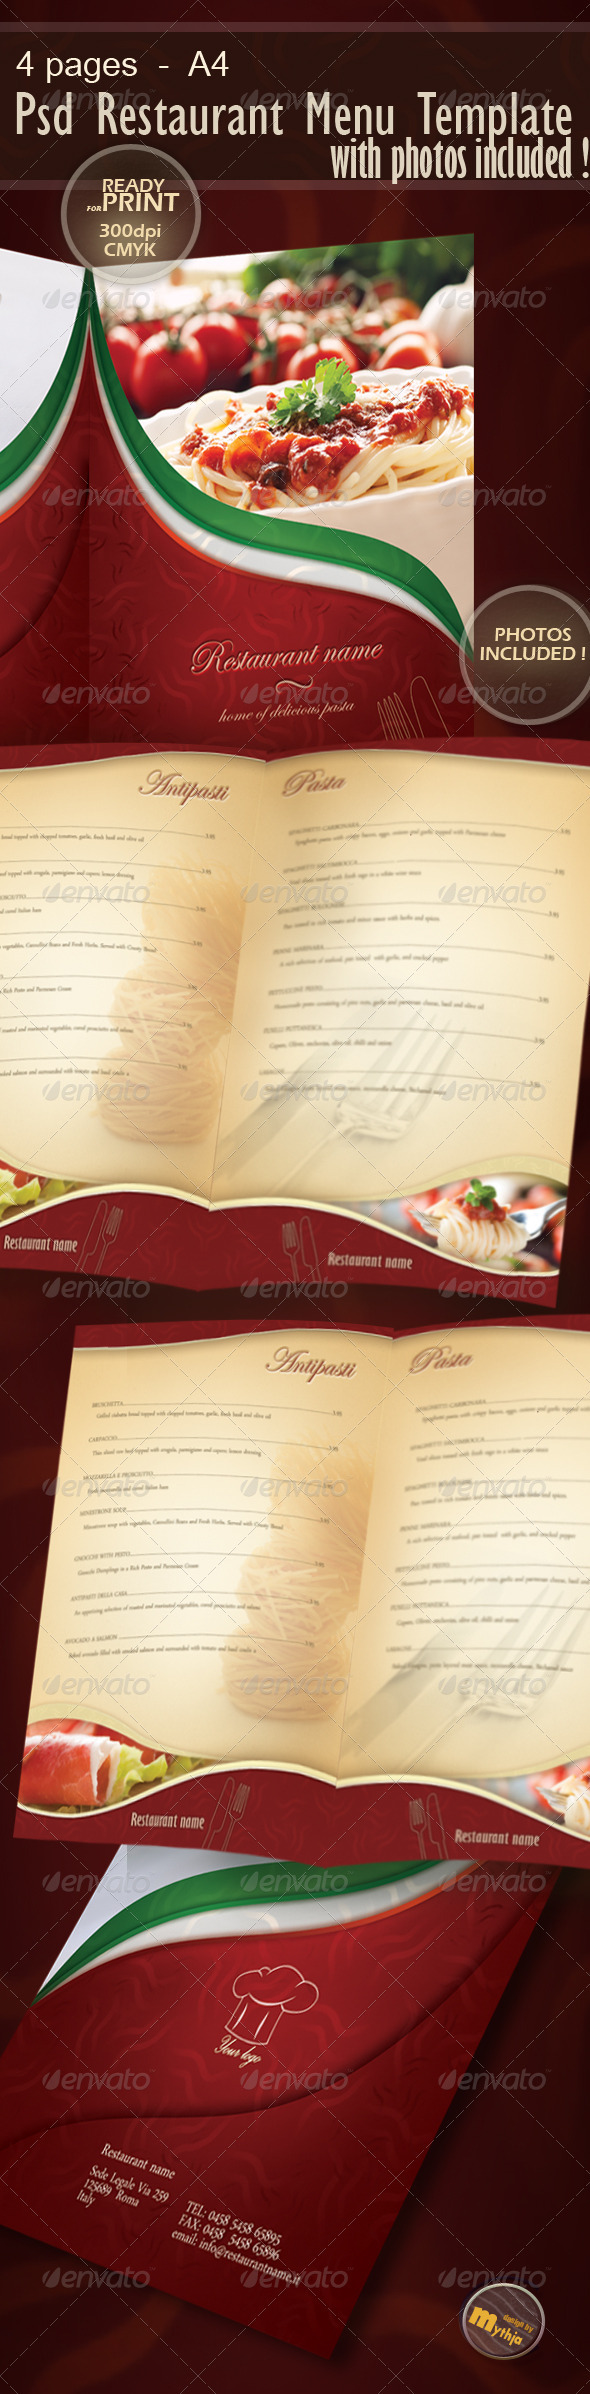 restaurant menu indesign template. Black Bedroom Furniture Sets. Home Design Ideas